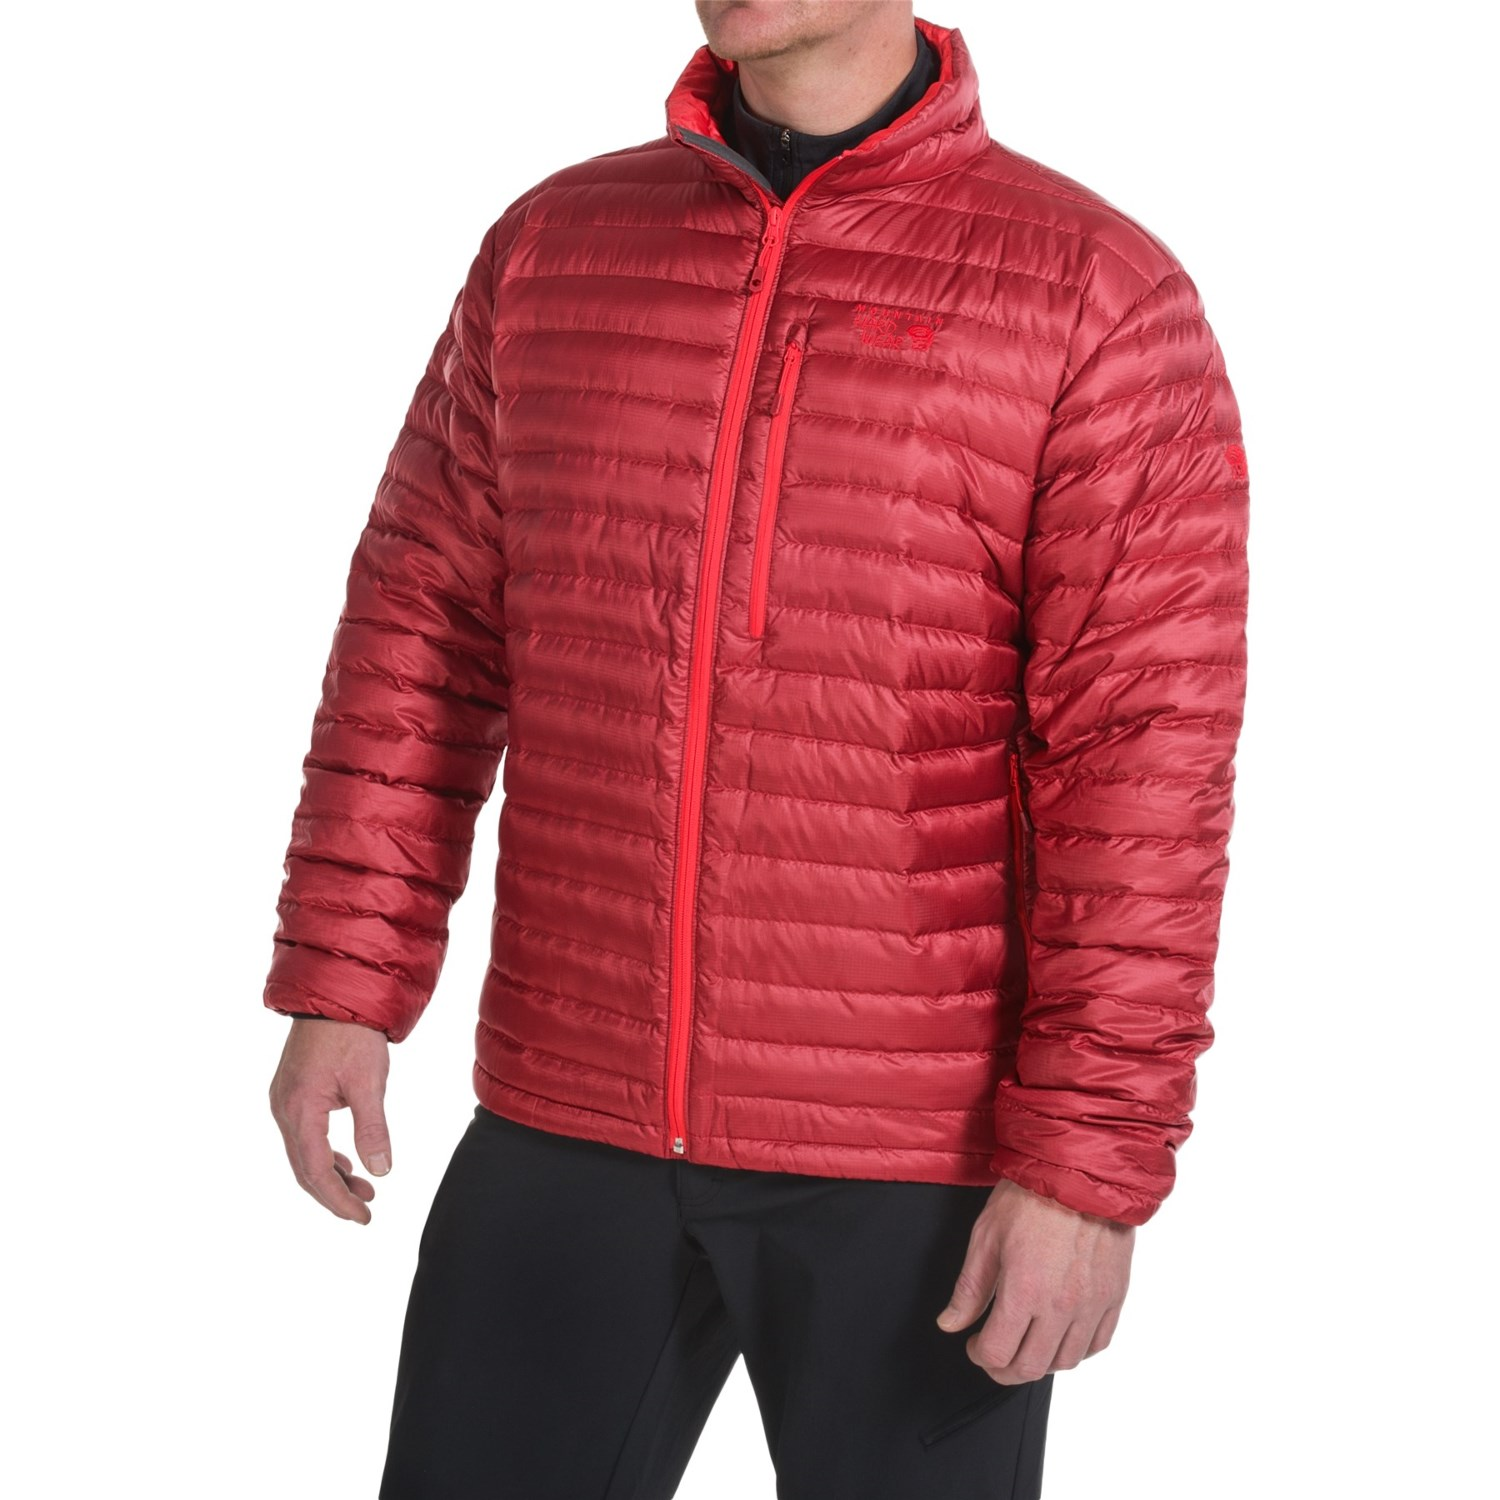 best reviewed 800 fill goose down jacket | Motorcycle Training London